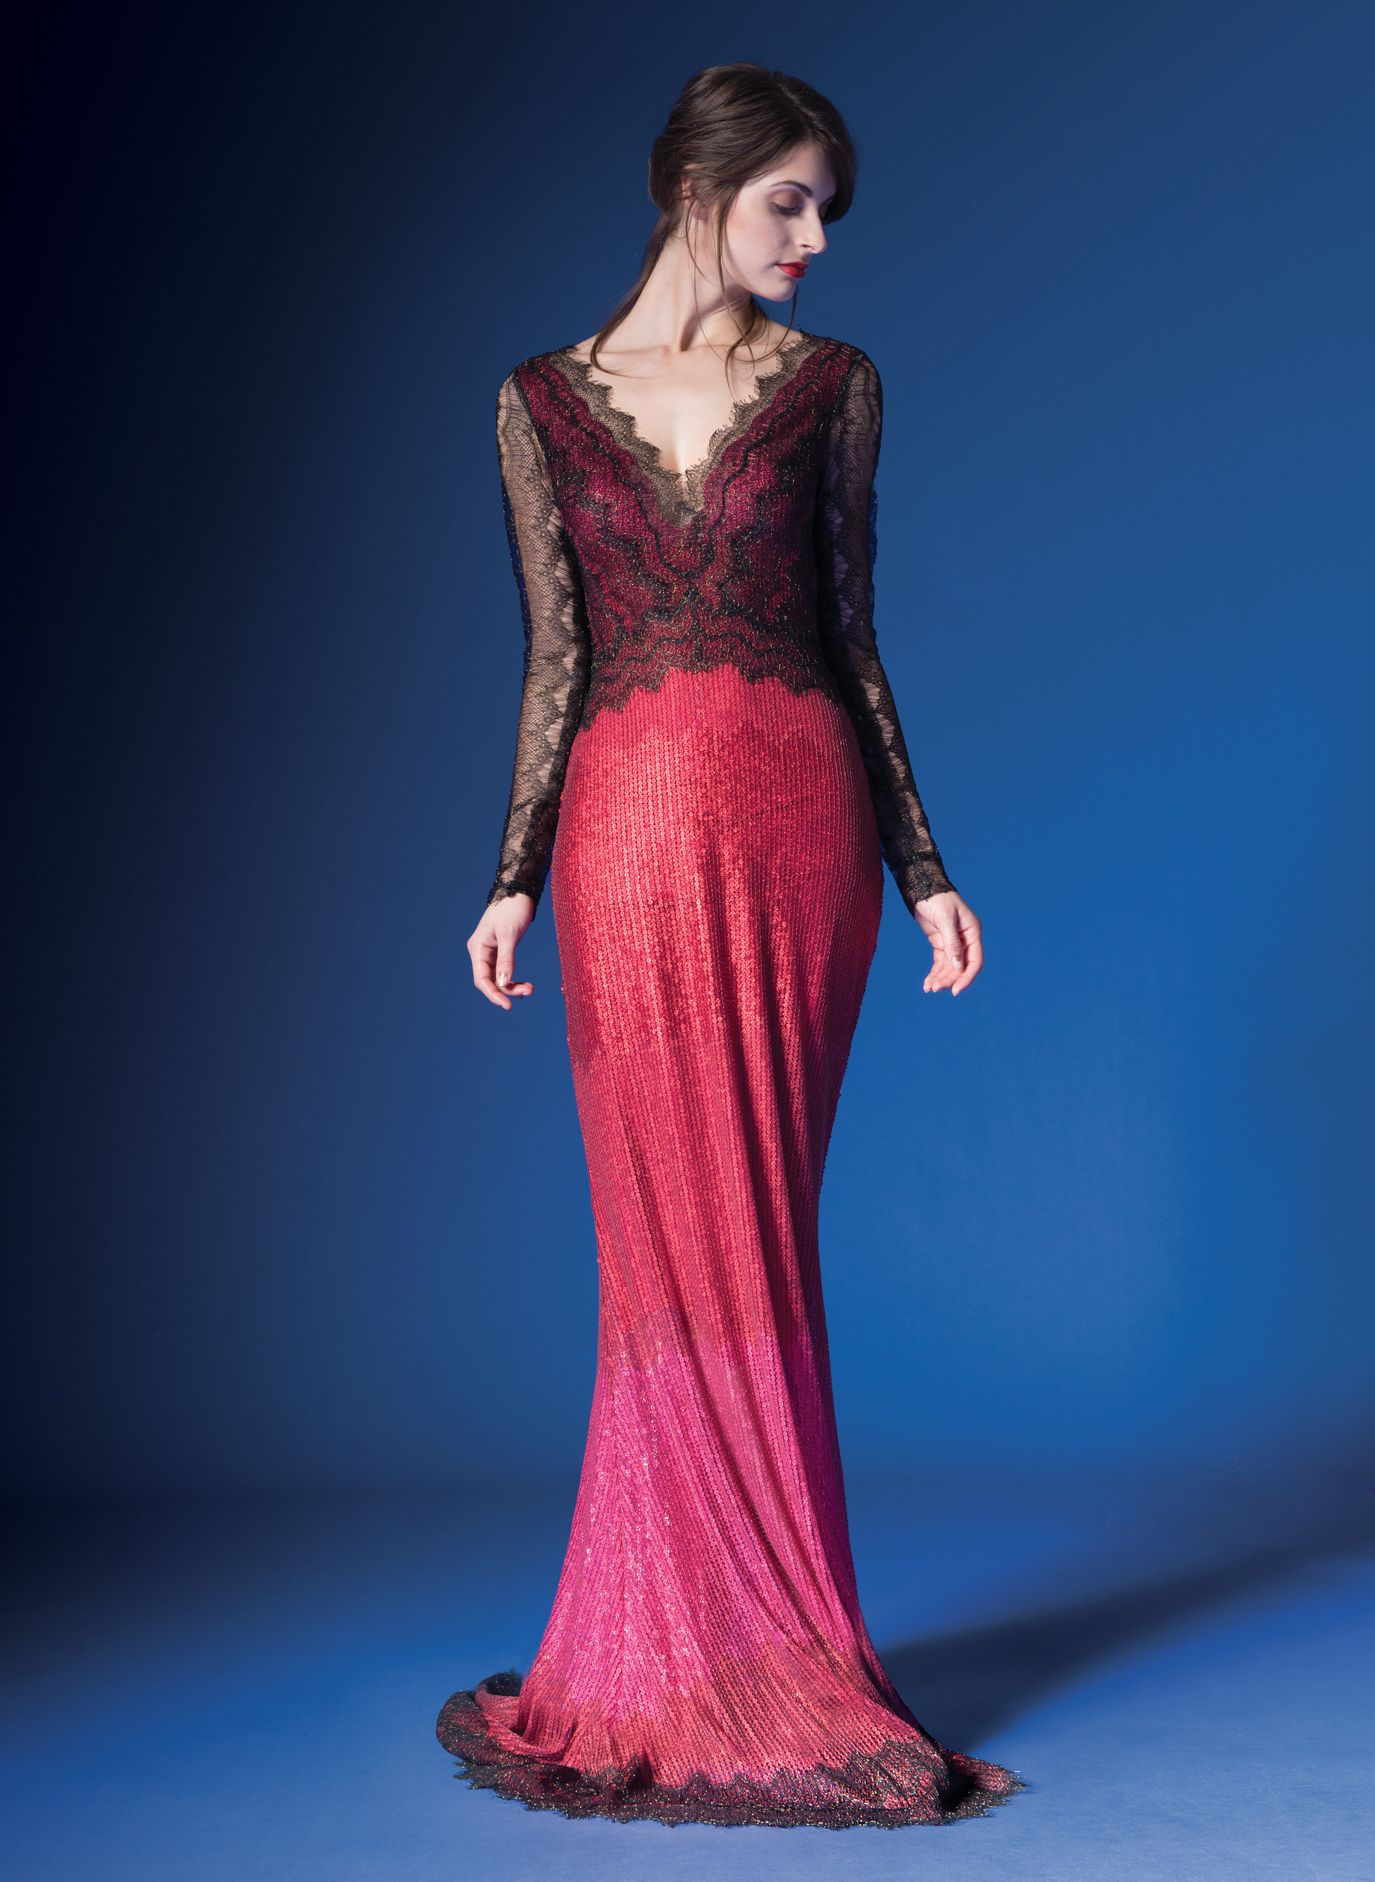 Metallic chantilly lace over sequin and lace vneck long sleeve gown